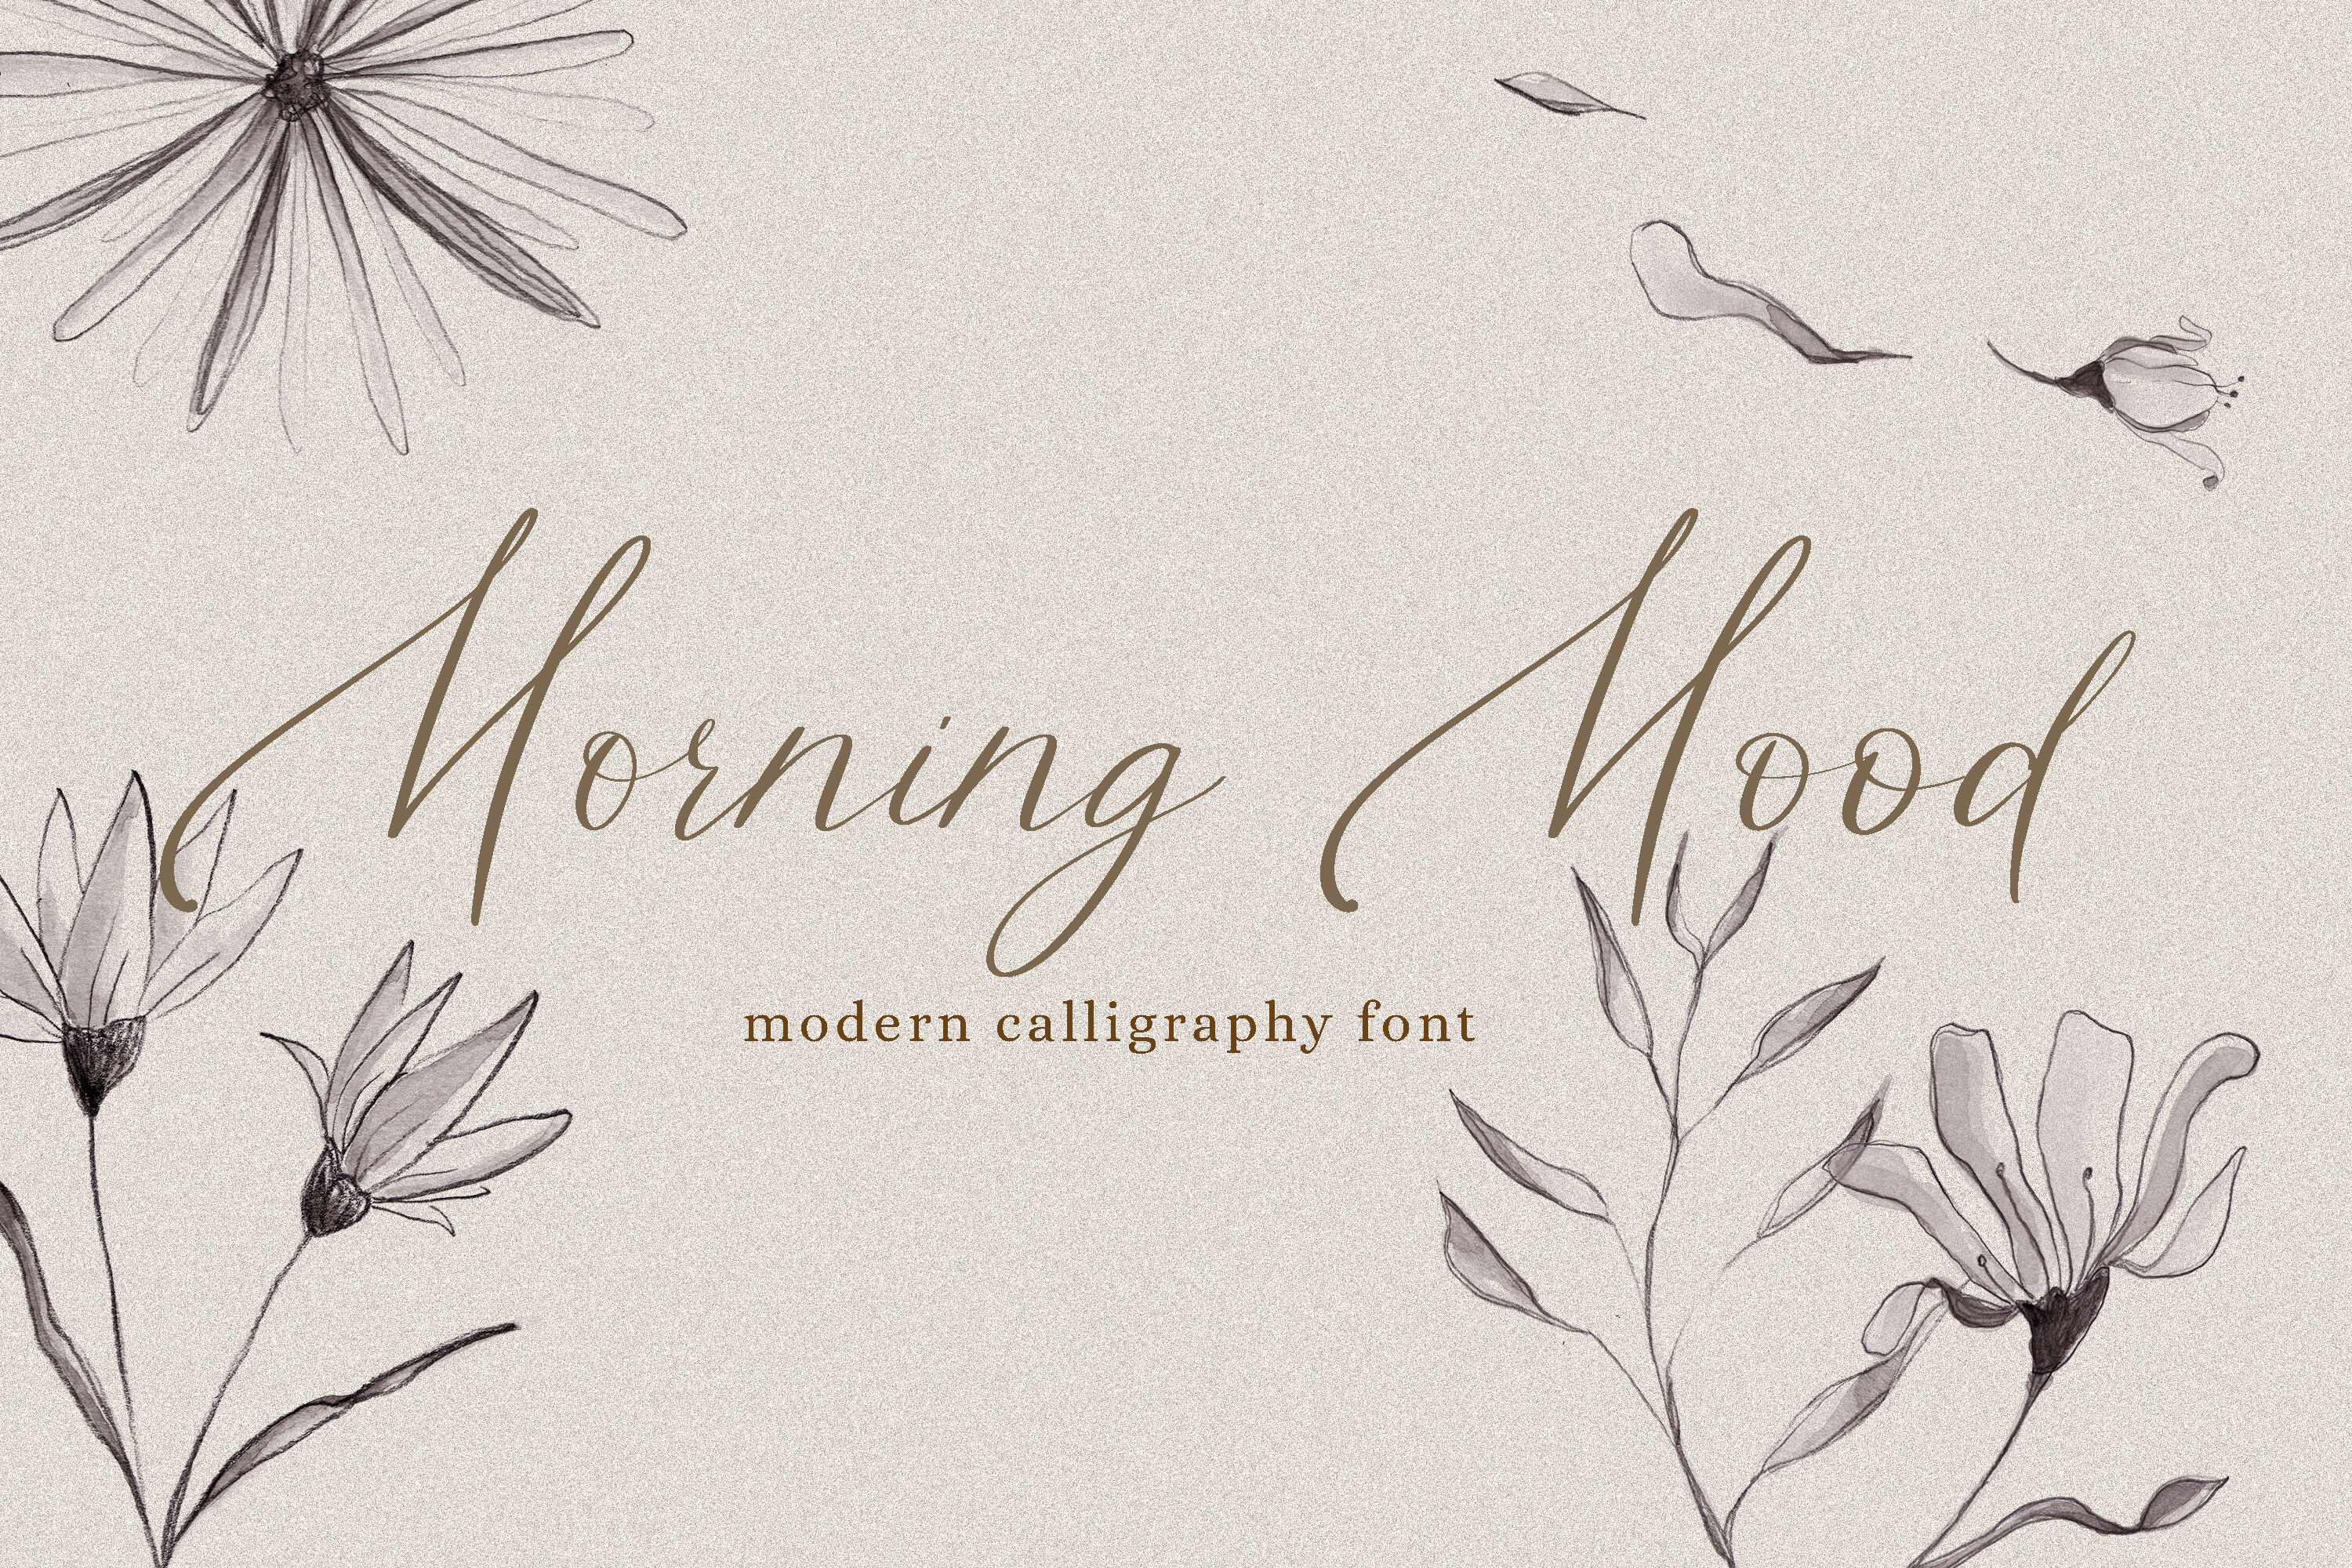 Morning Mood Calligraphy Hand Written Font By Taningreen